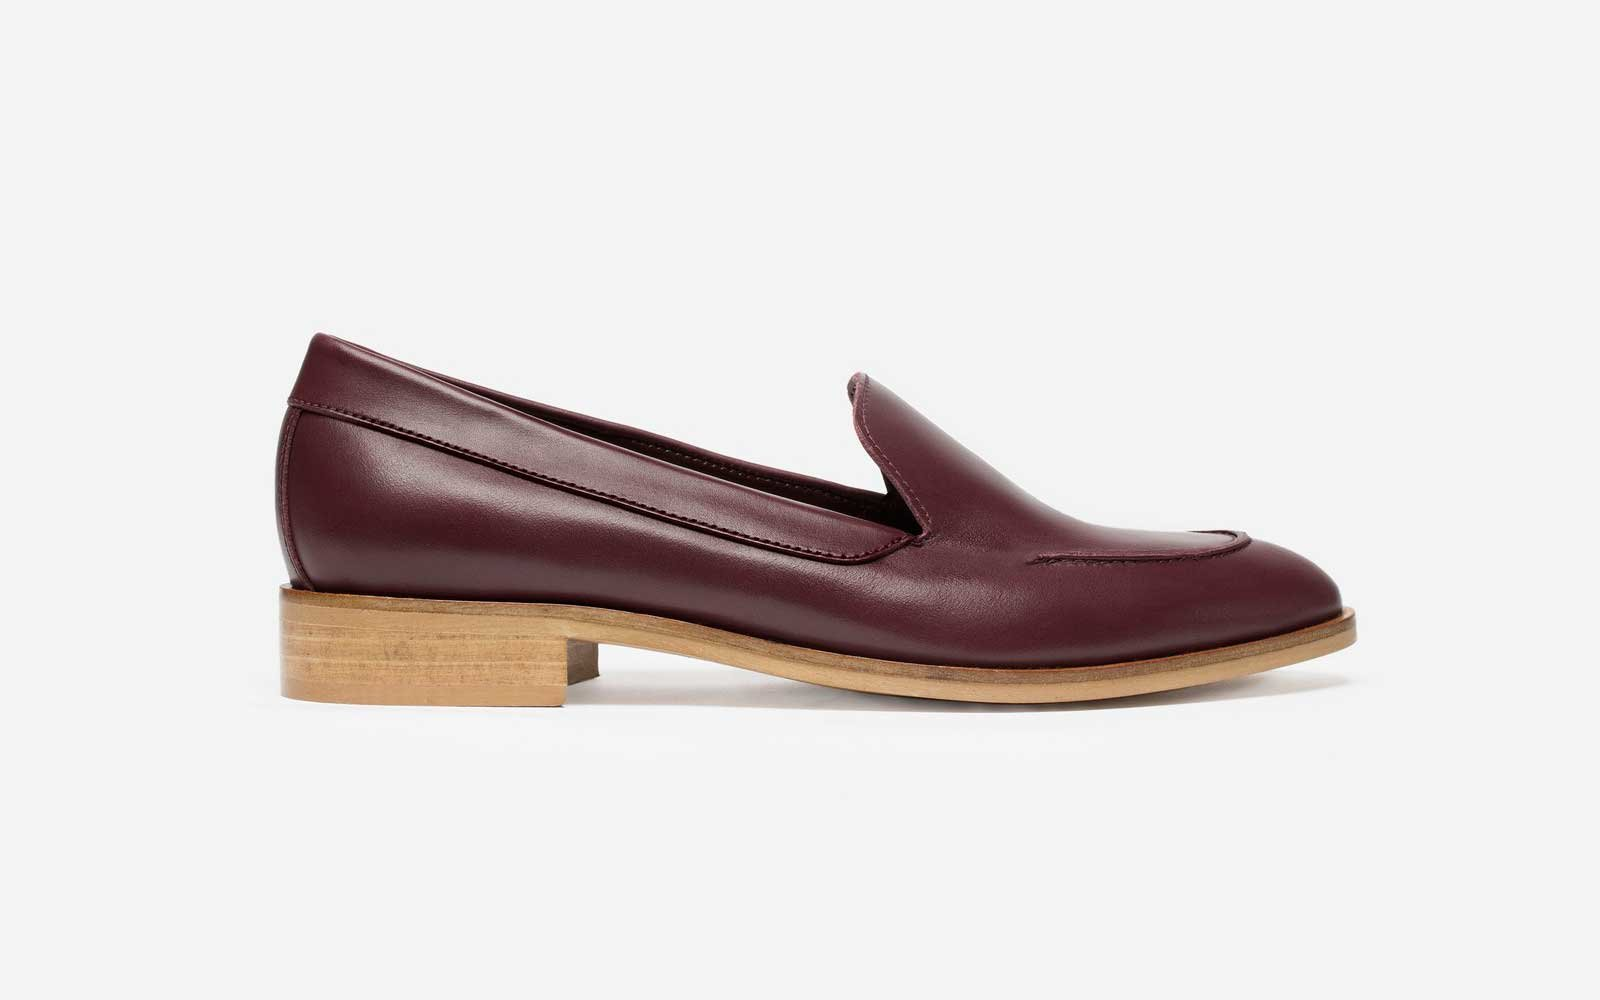 Best Walking Shoes for Travel: Everlane